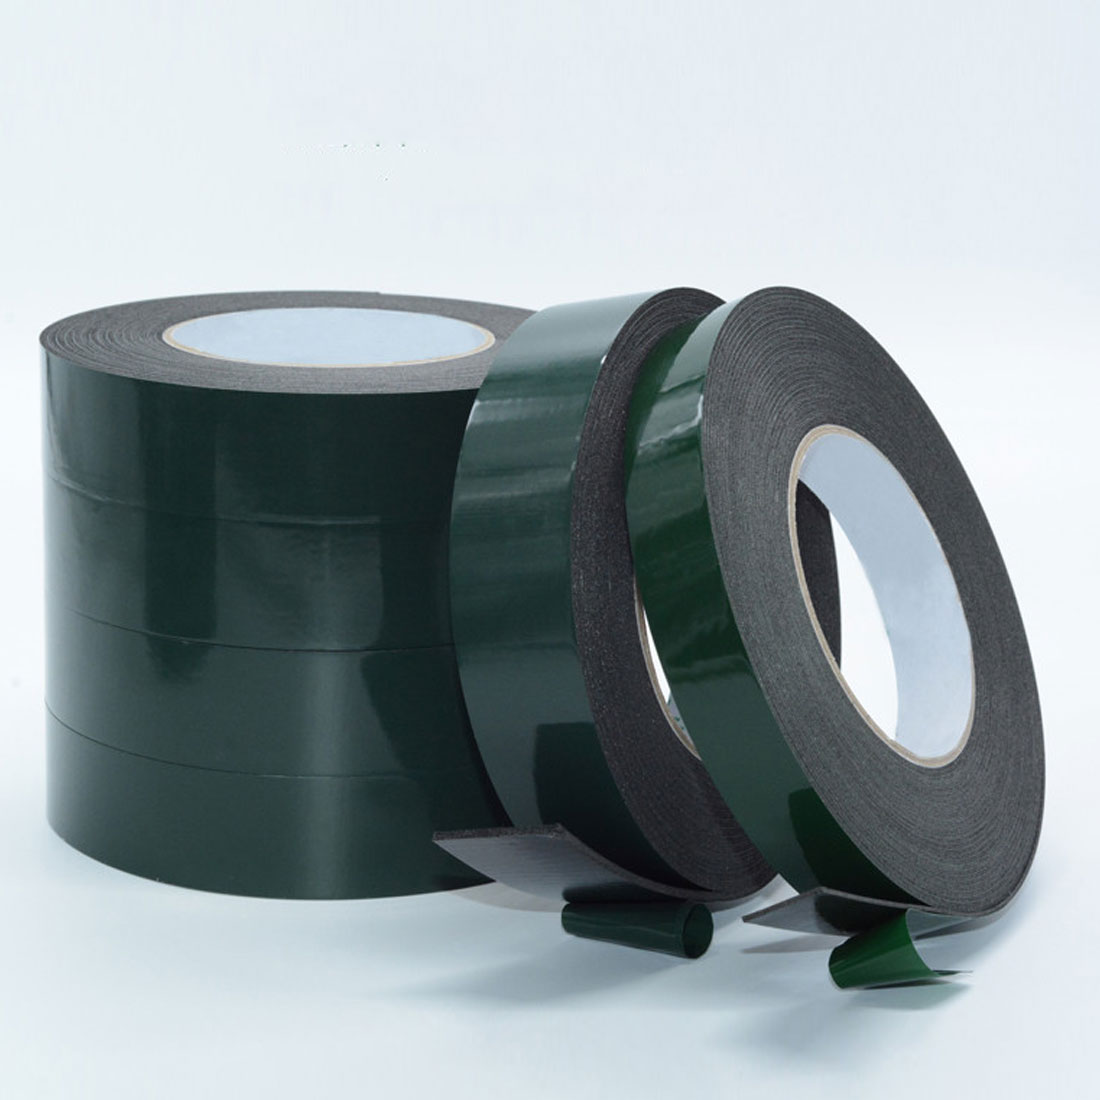 Strong Adhesive Waterproof Double Sided Tape 10m Length 10mm Width Foam Green Tape Trim Home Car